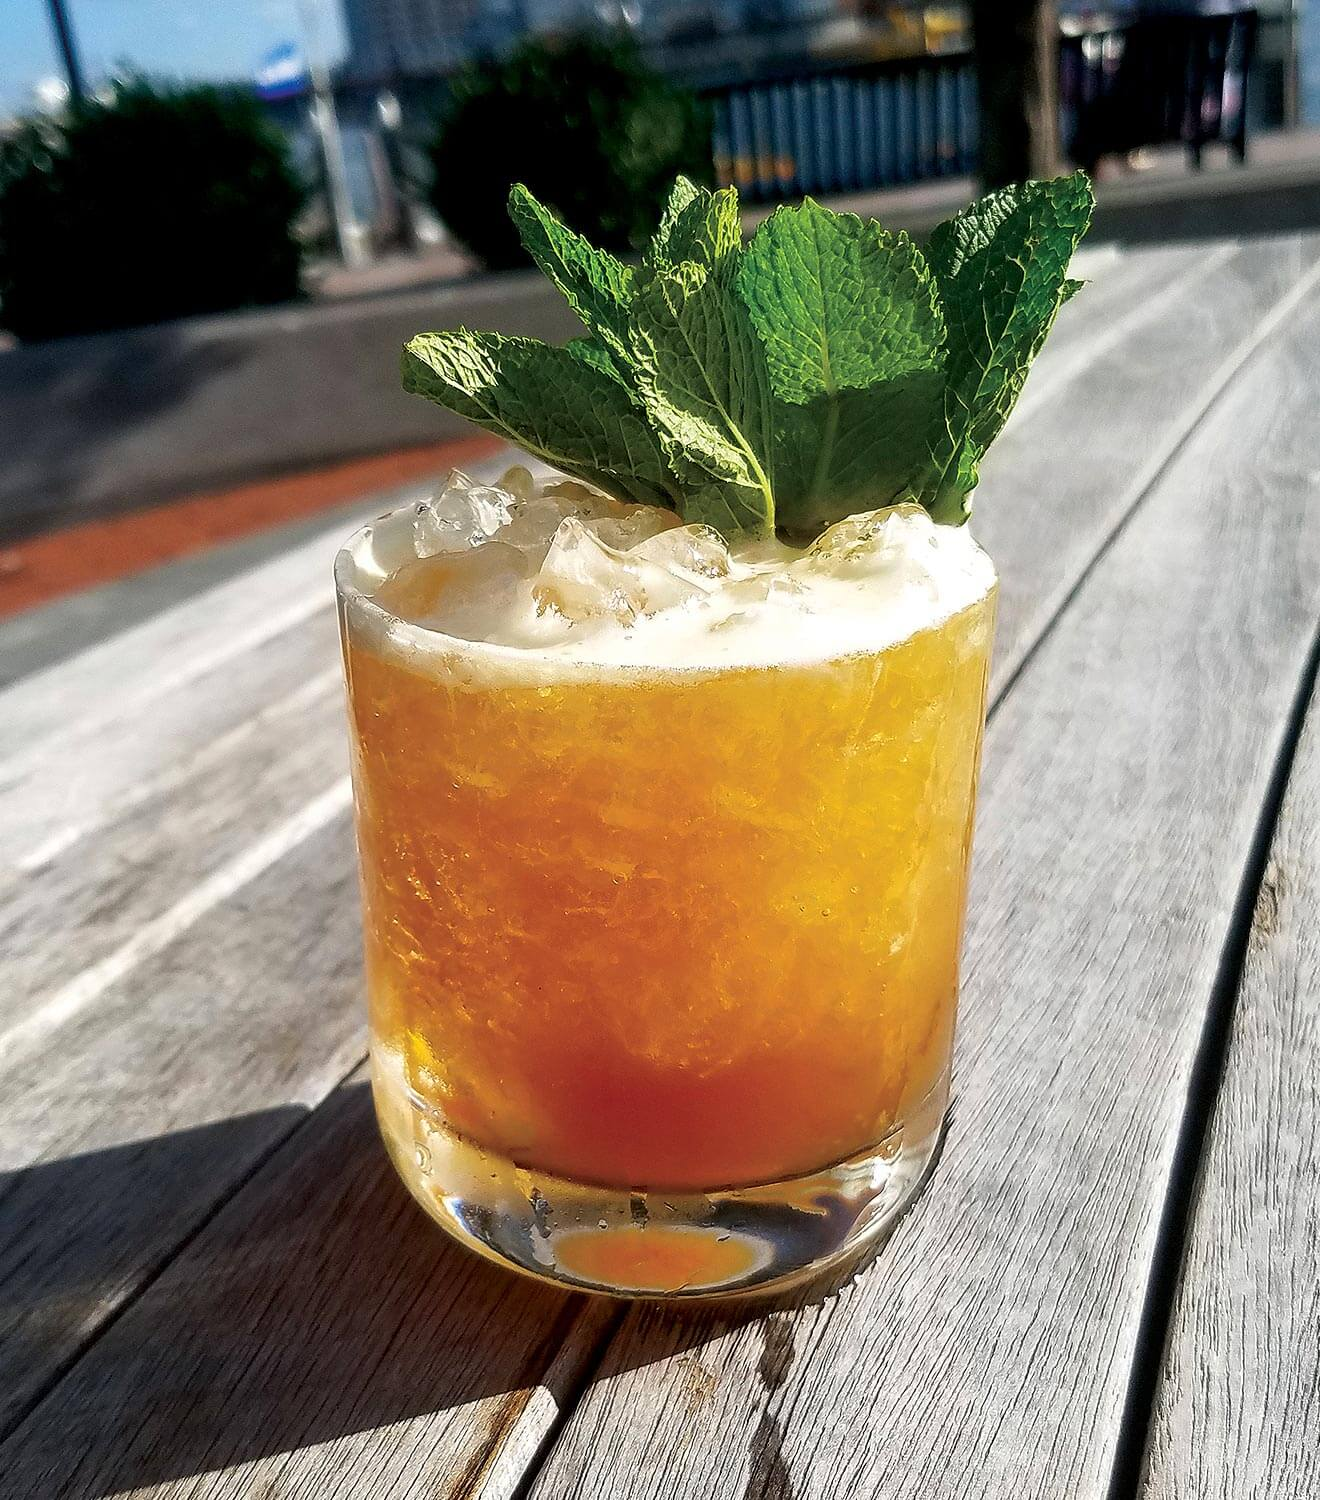 Creole Cup cocktail